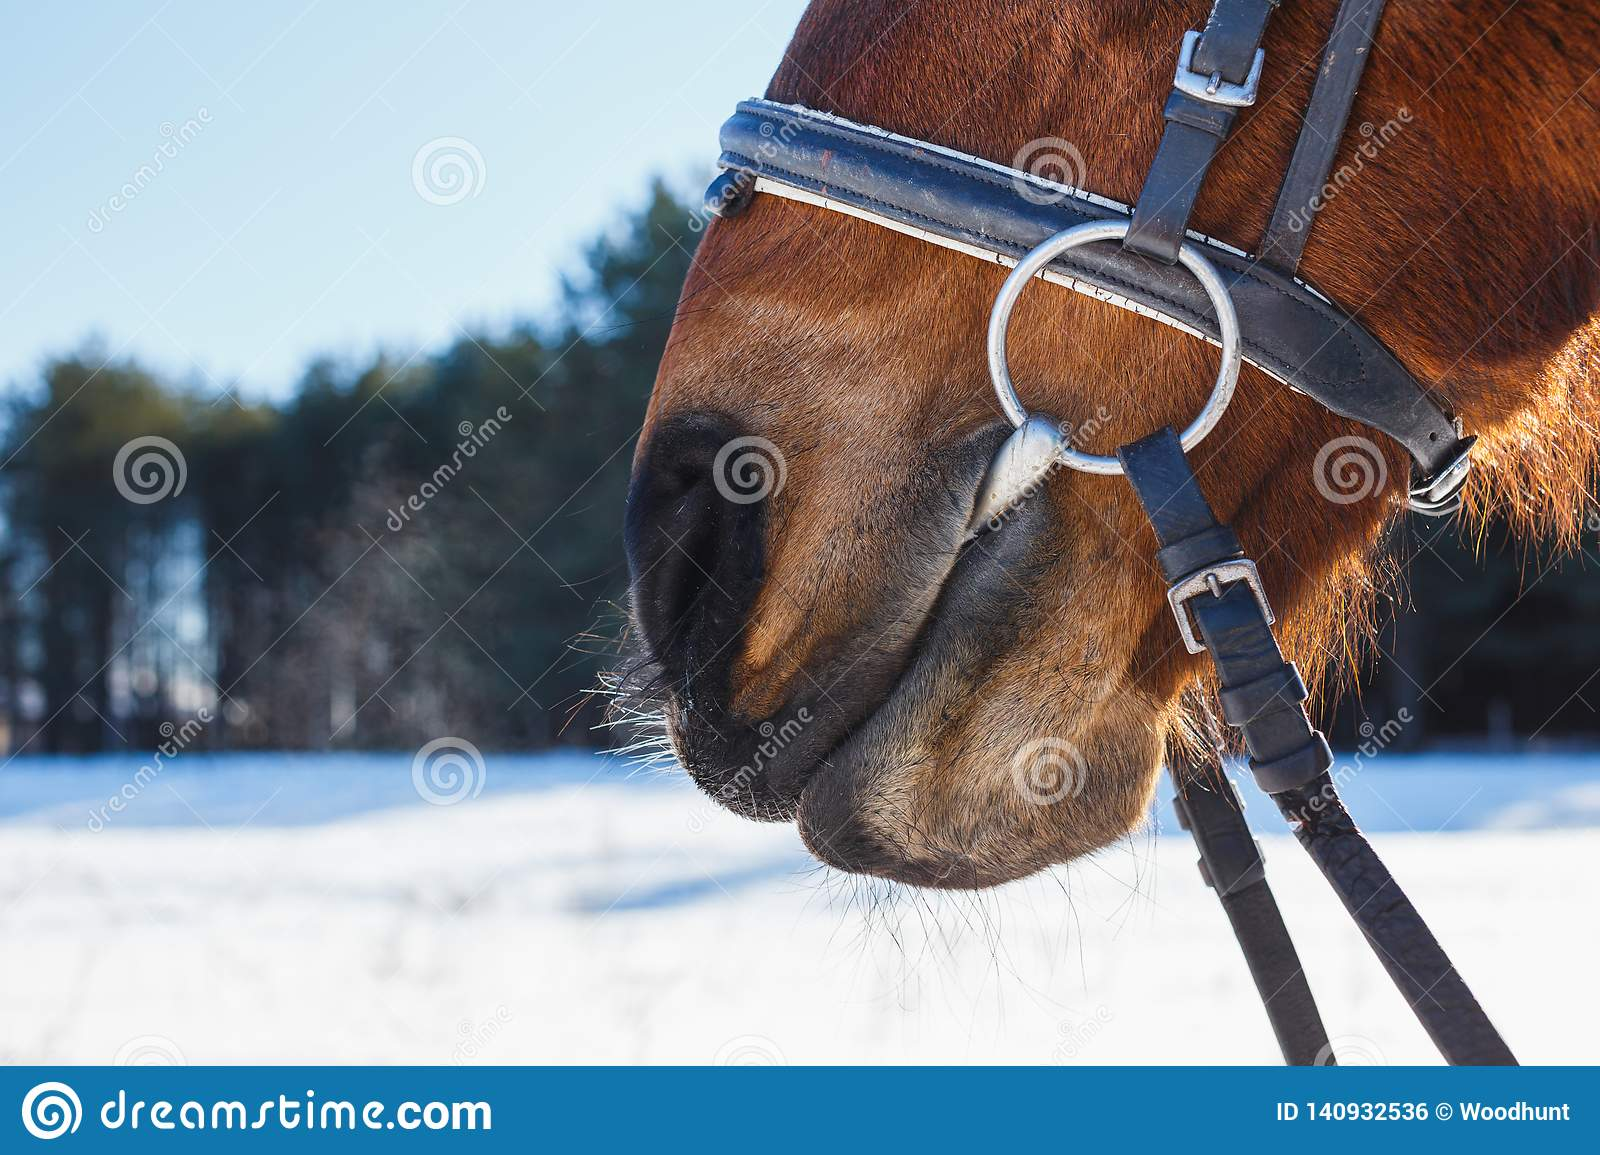 Funny nose of the horse against the blue sky